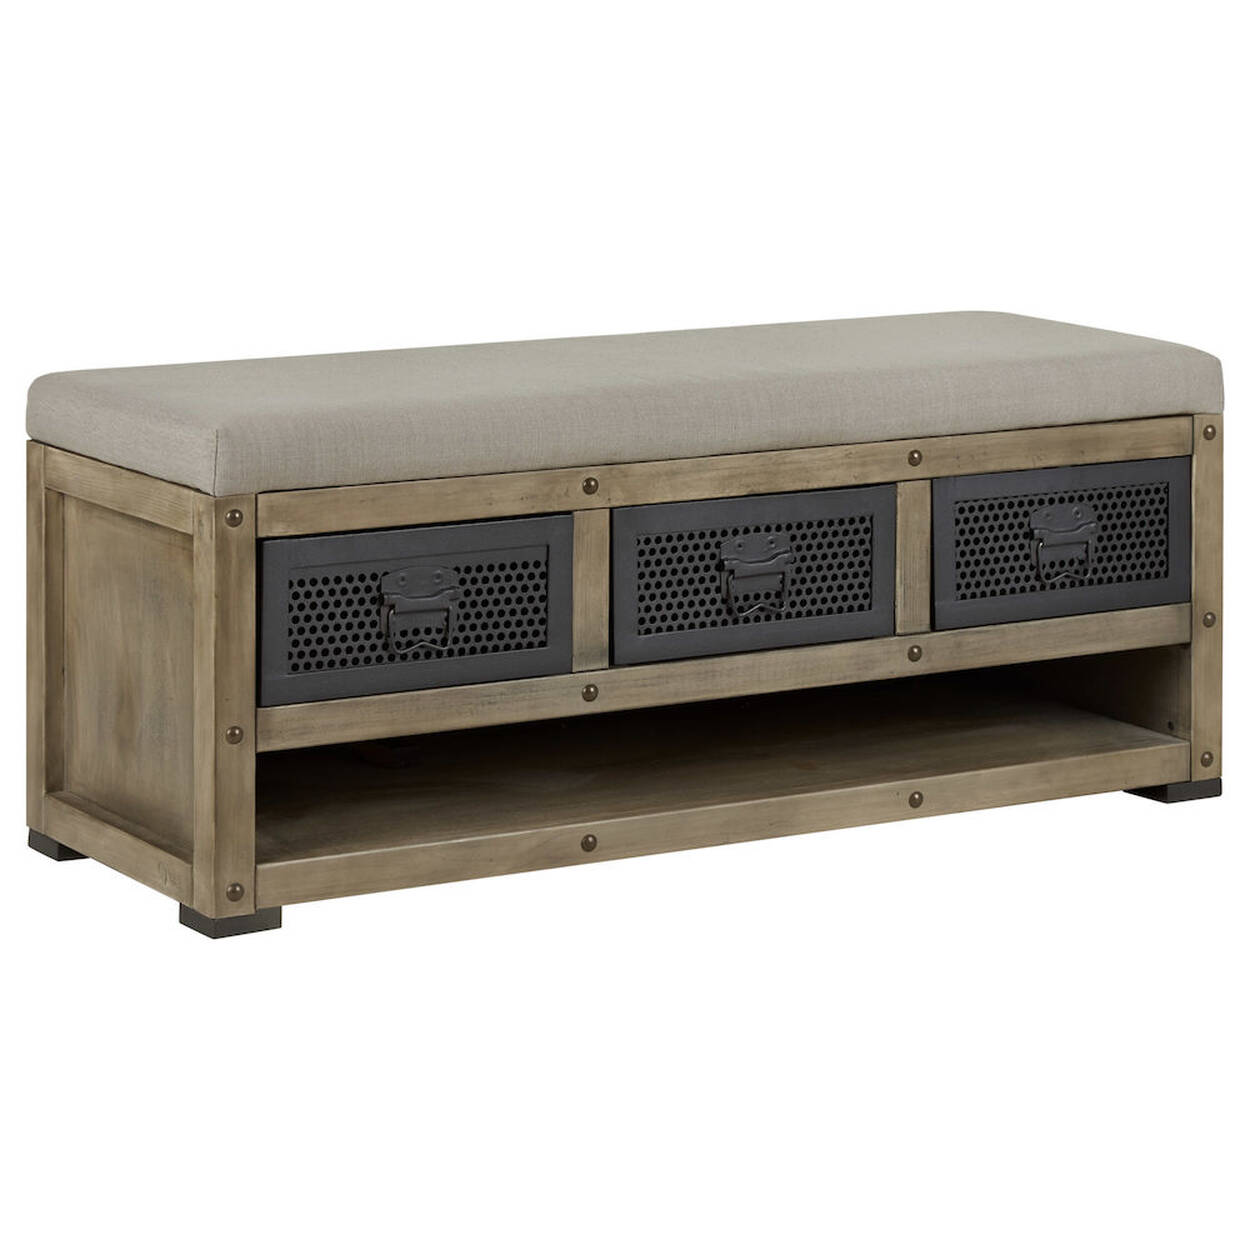 new tuppercraft suitable fabric ideal grey room com of traditional pic living mouse storage bench ottoman upholstered the